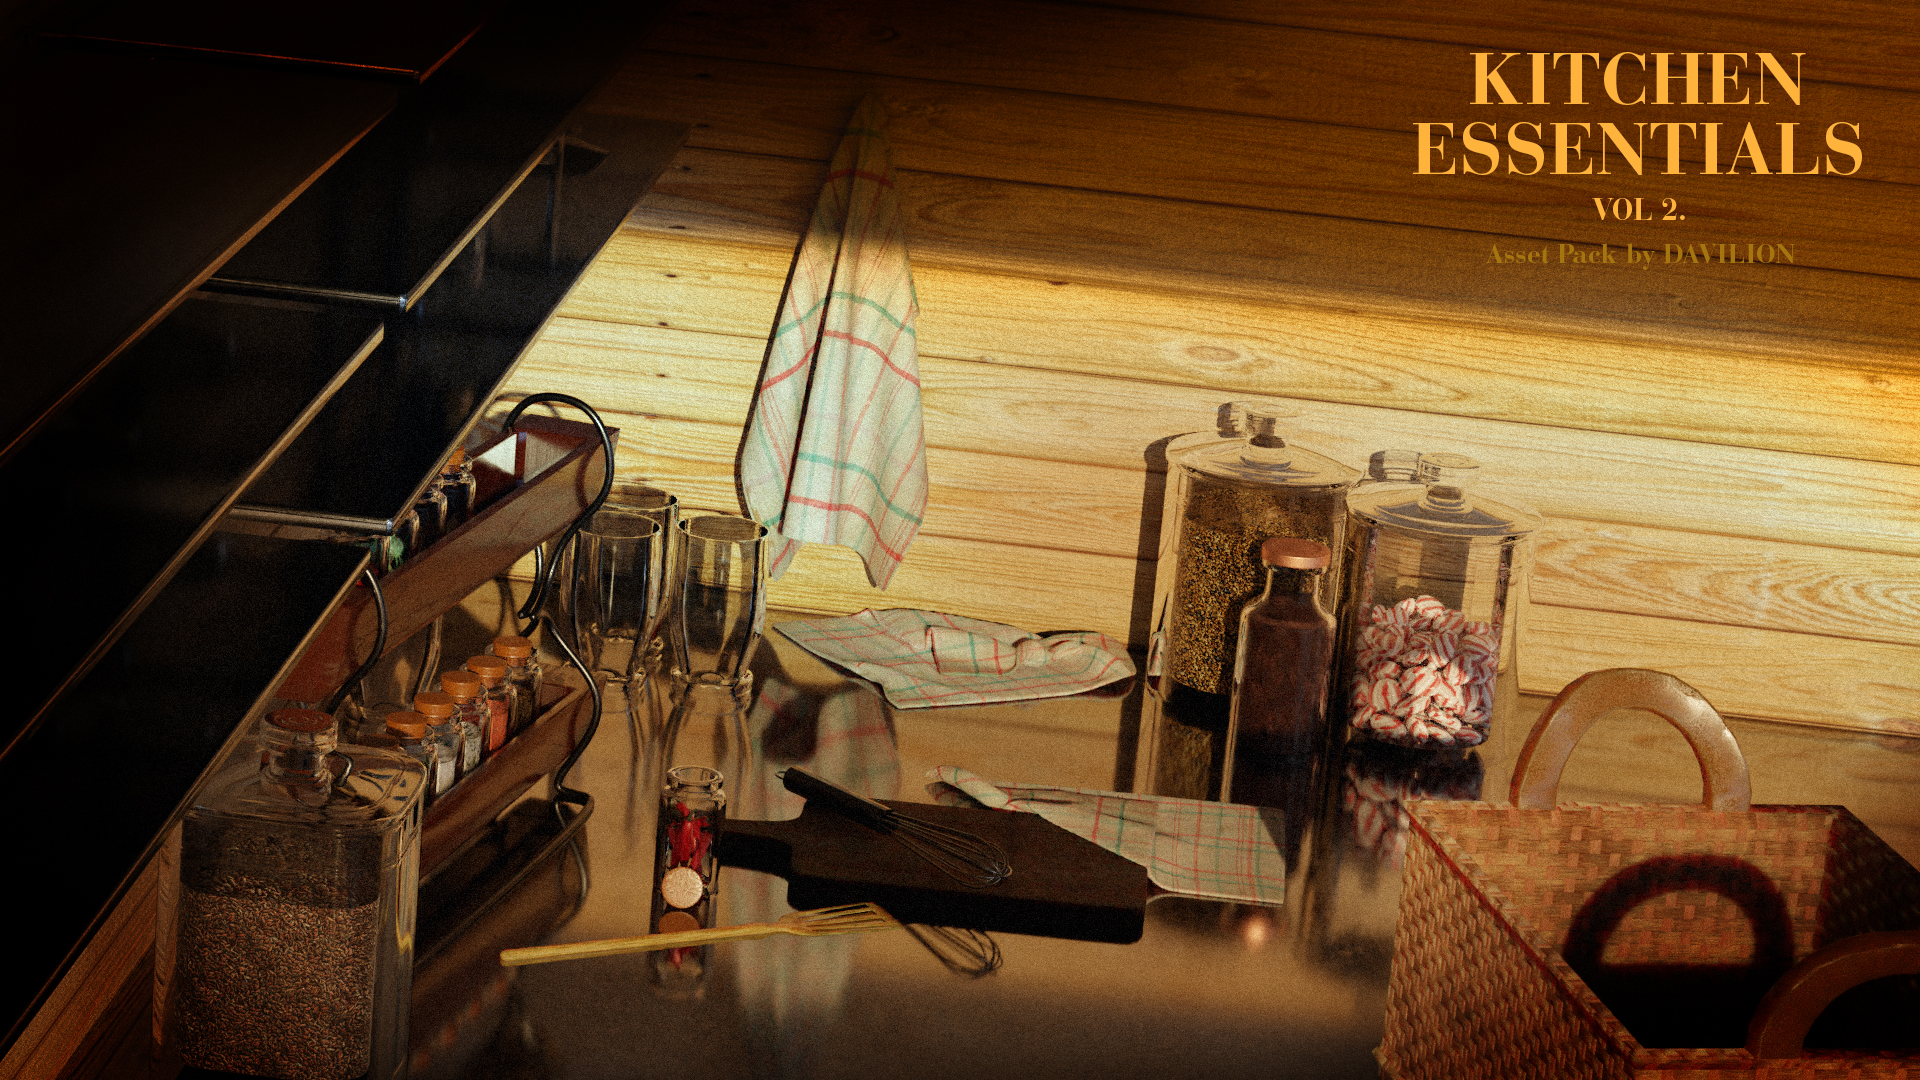 Vol2. Kitchen Essentials Asset Pack by Davilion preview image 2